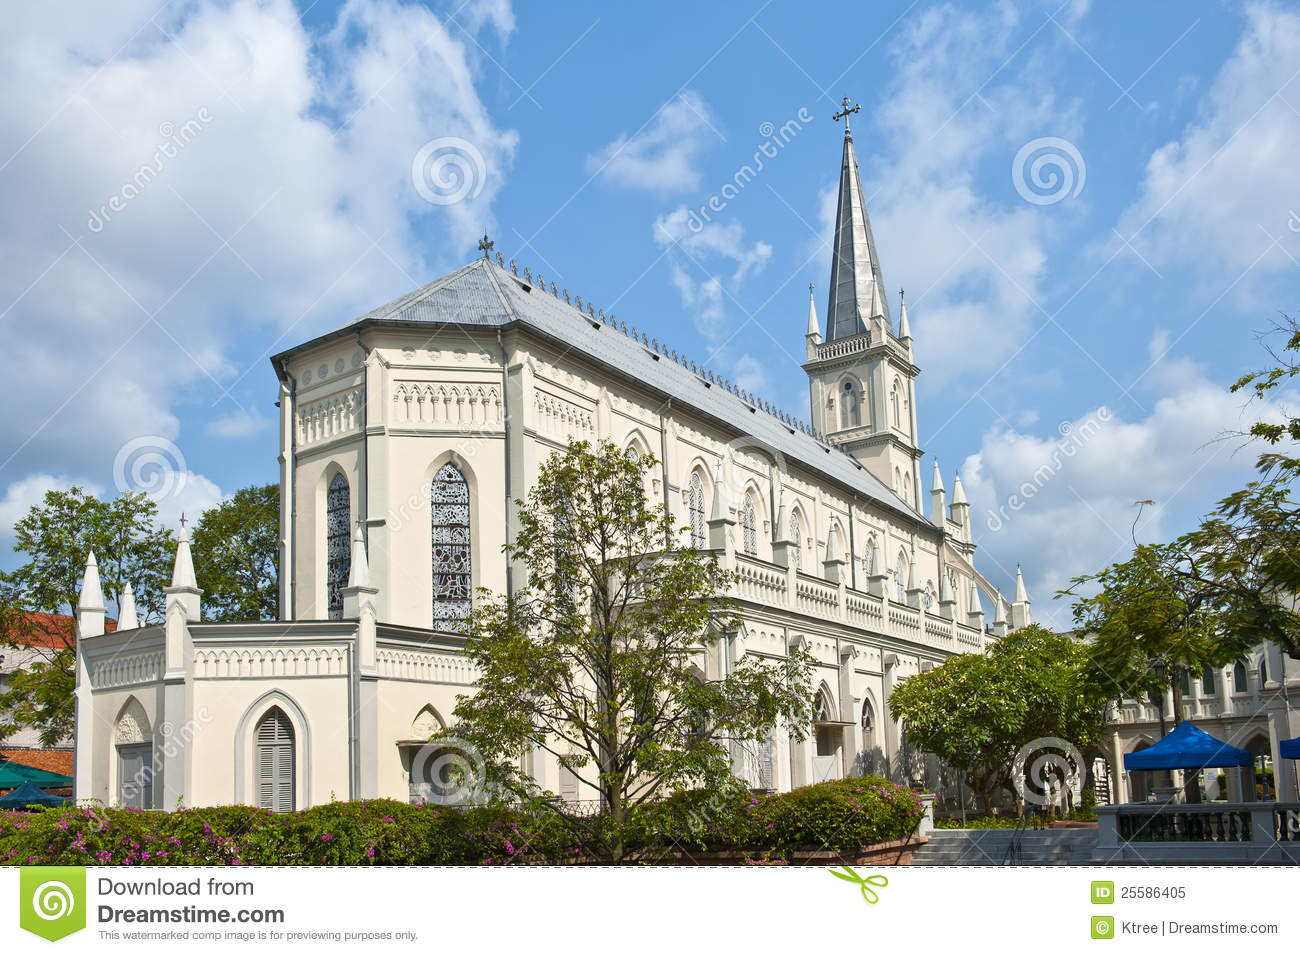 Singapore CHIJMES Cathedral